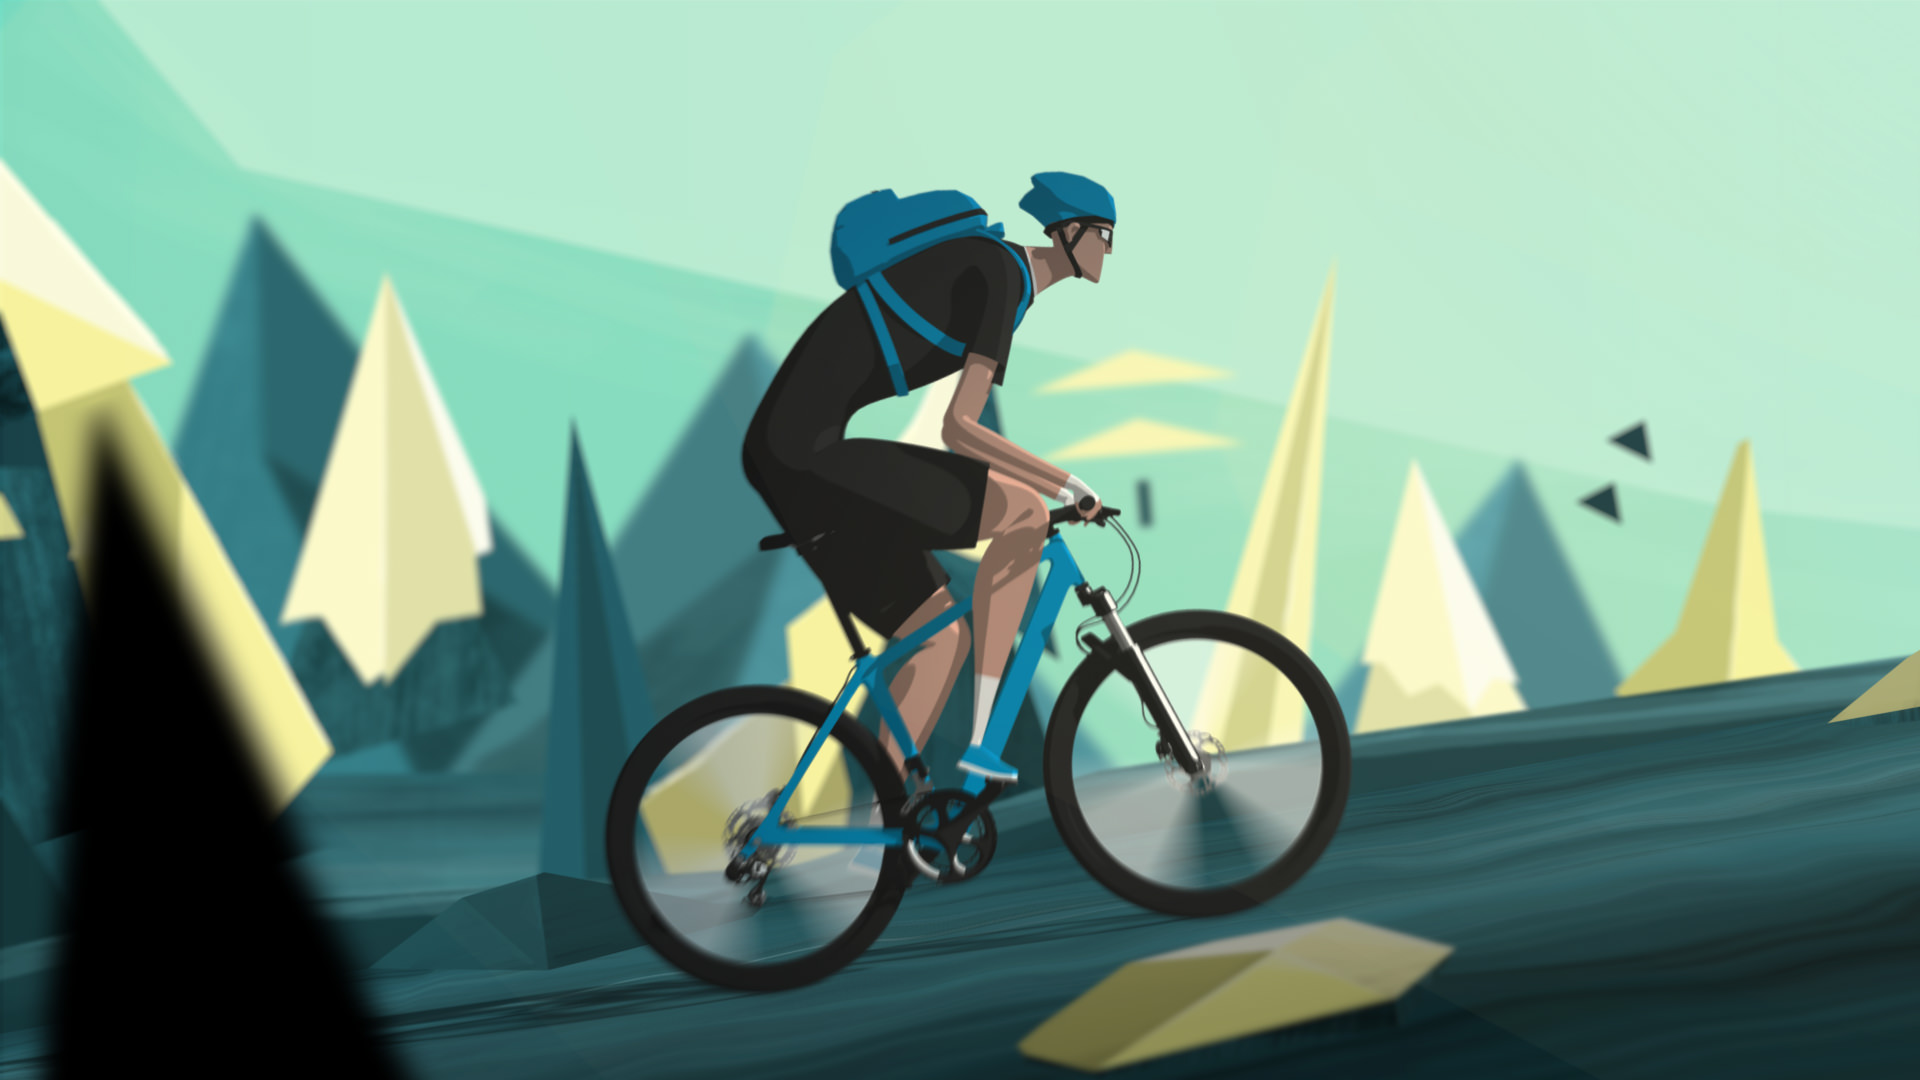 Shimano - The Science of Cycling